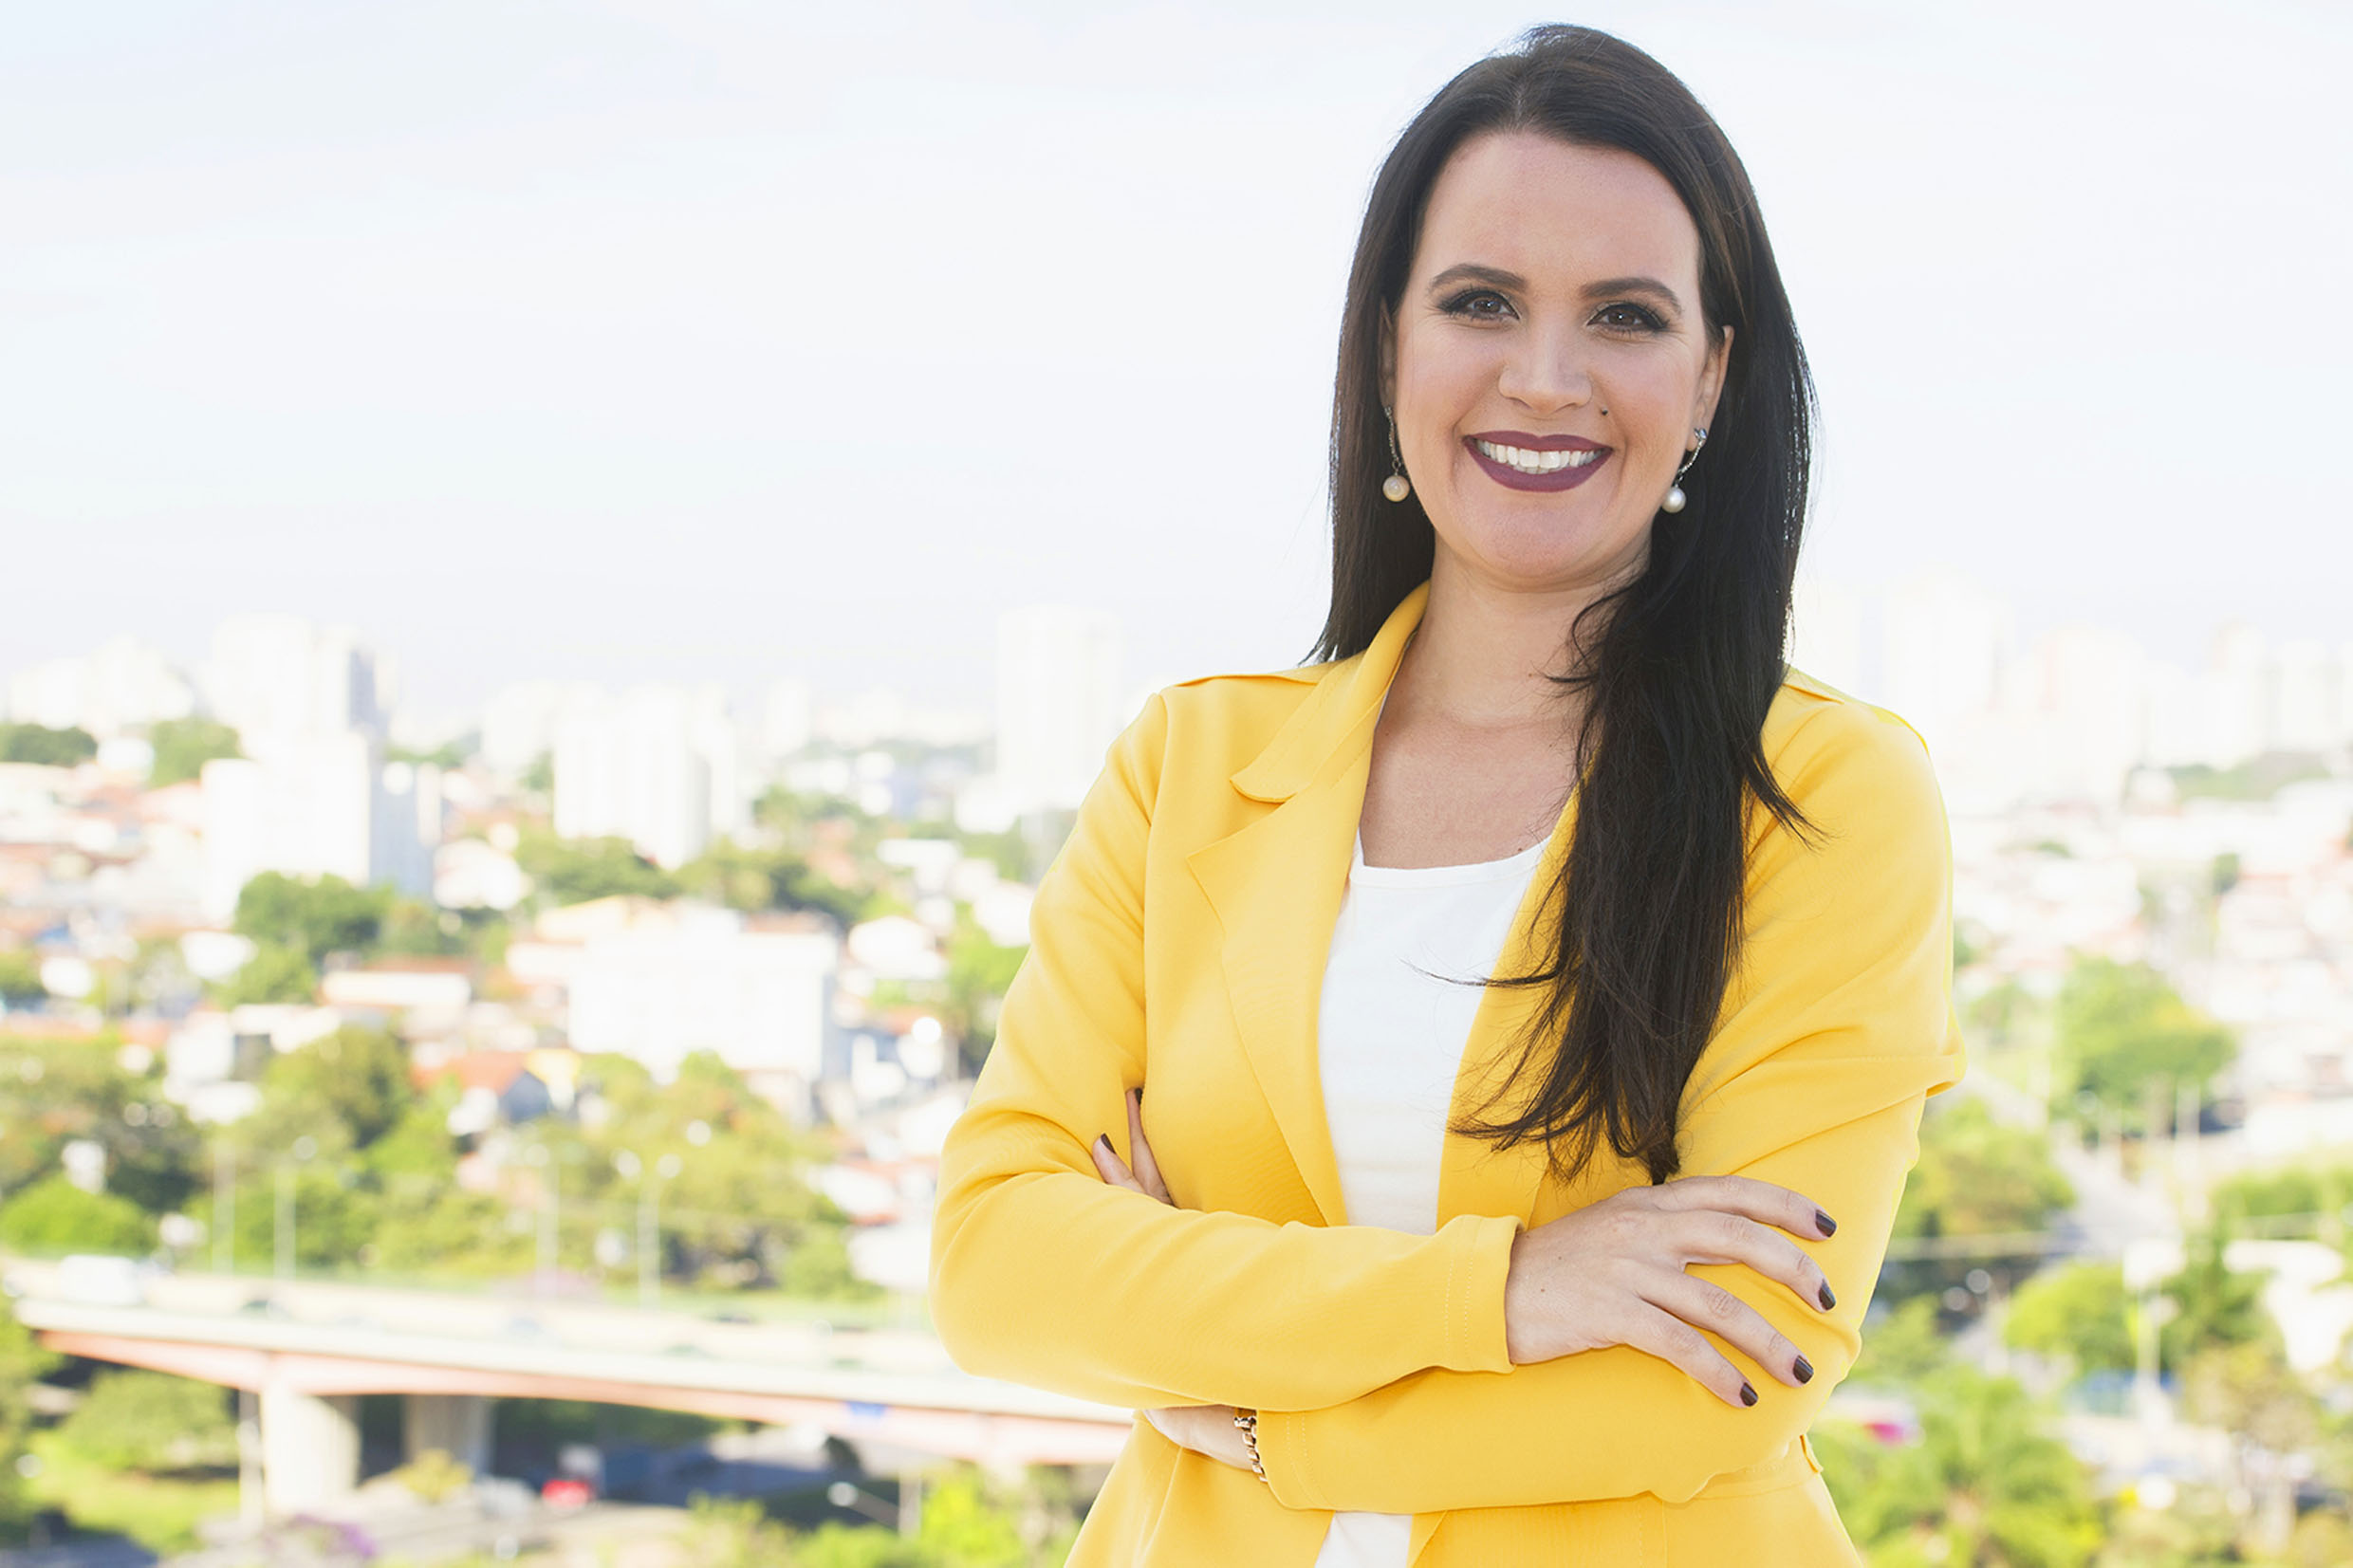 Leticia Aguiar<a style='float:right' href='https://www3.al.sp.gov.br/repositorio/noticia/N-04-2019/fg232745.jpg' target=_blank><img src='/_img/material-file-download-white.png' width='14px' alt='Clique para baixar a imagem'></a>